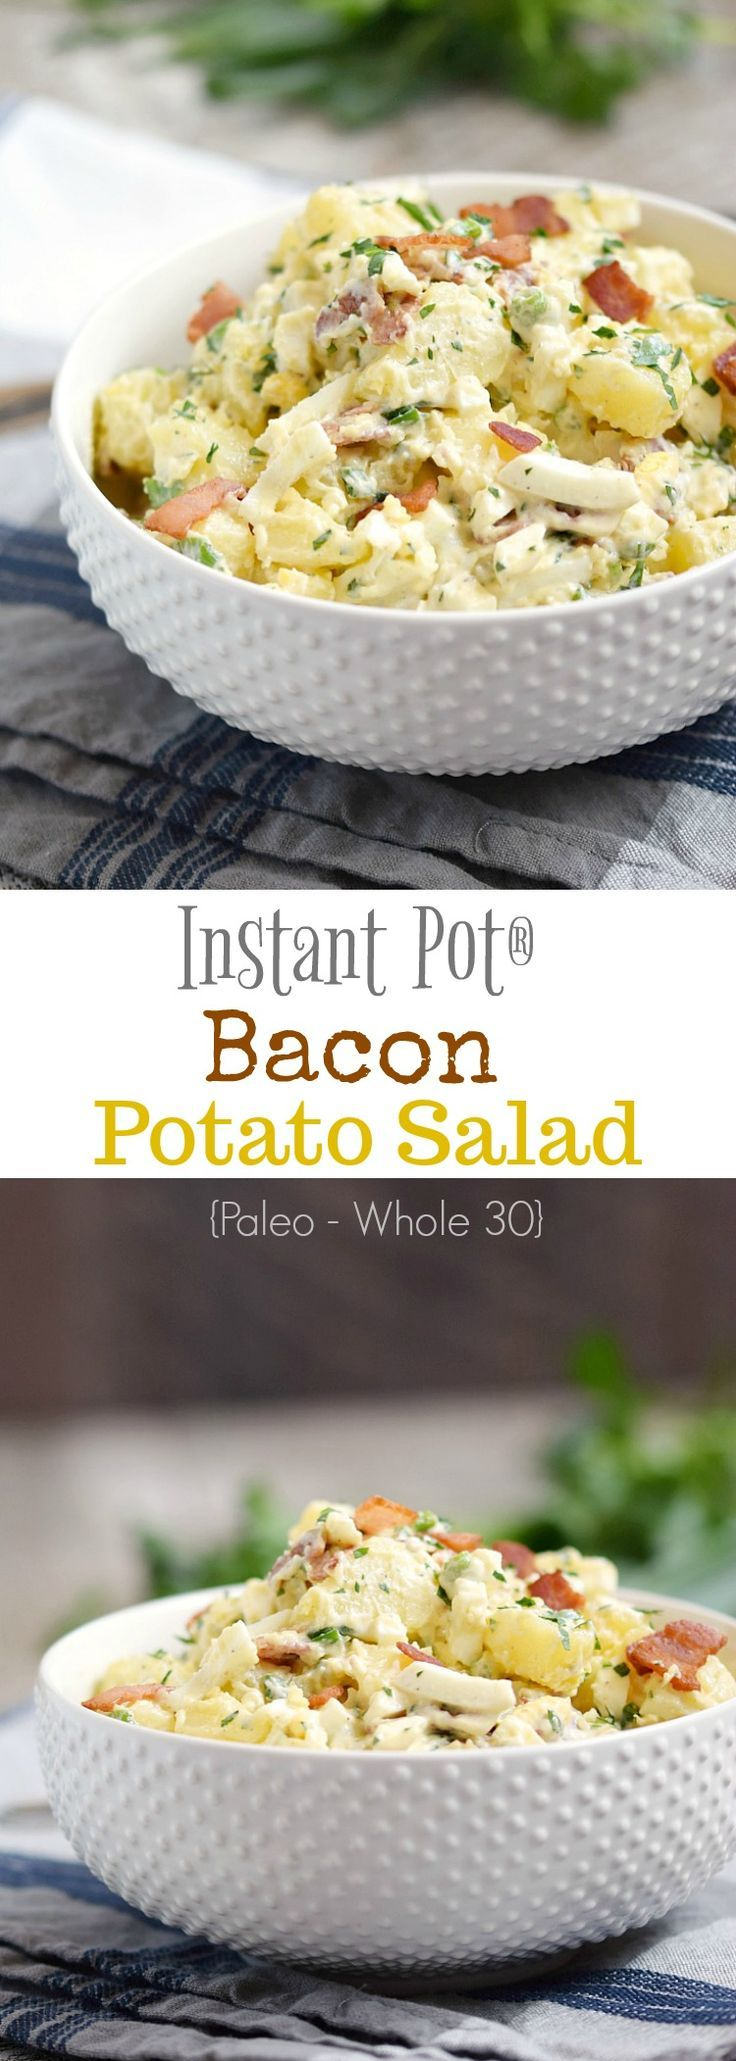 This Instant Pot Bacon Potato Salad will be a hit at all of this summer's potlucks and barbecues, and it's even Paleo and Whole 30 compliant | cookingwithcurls.com